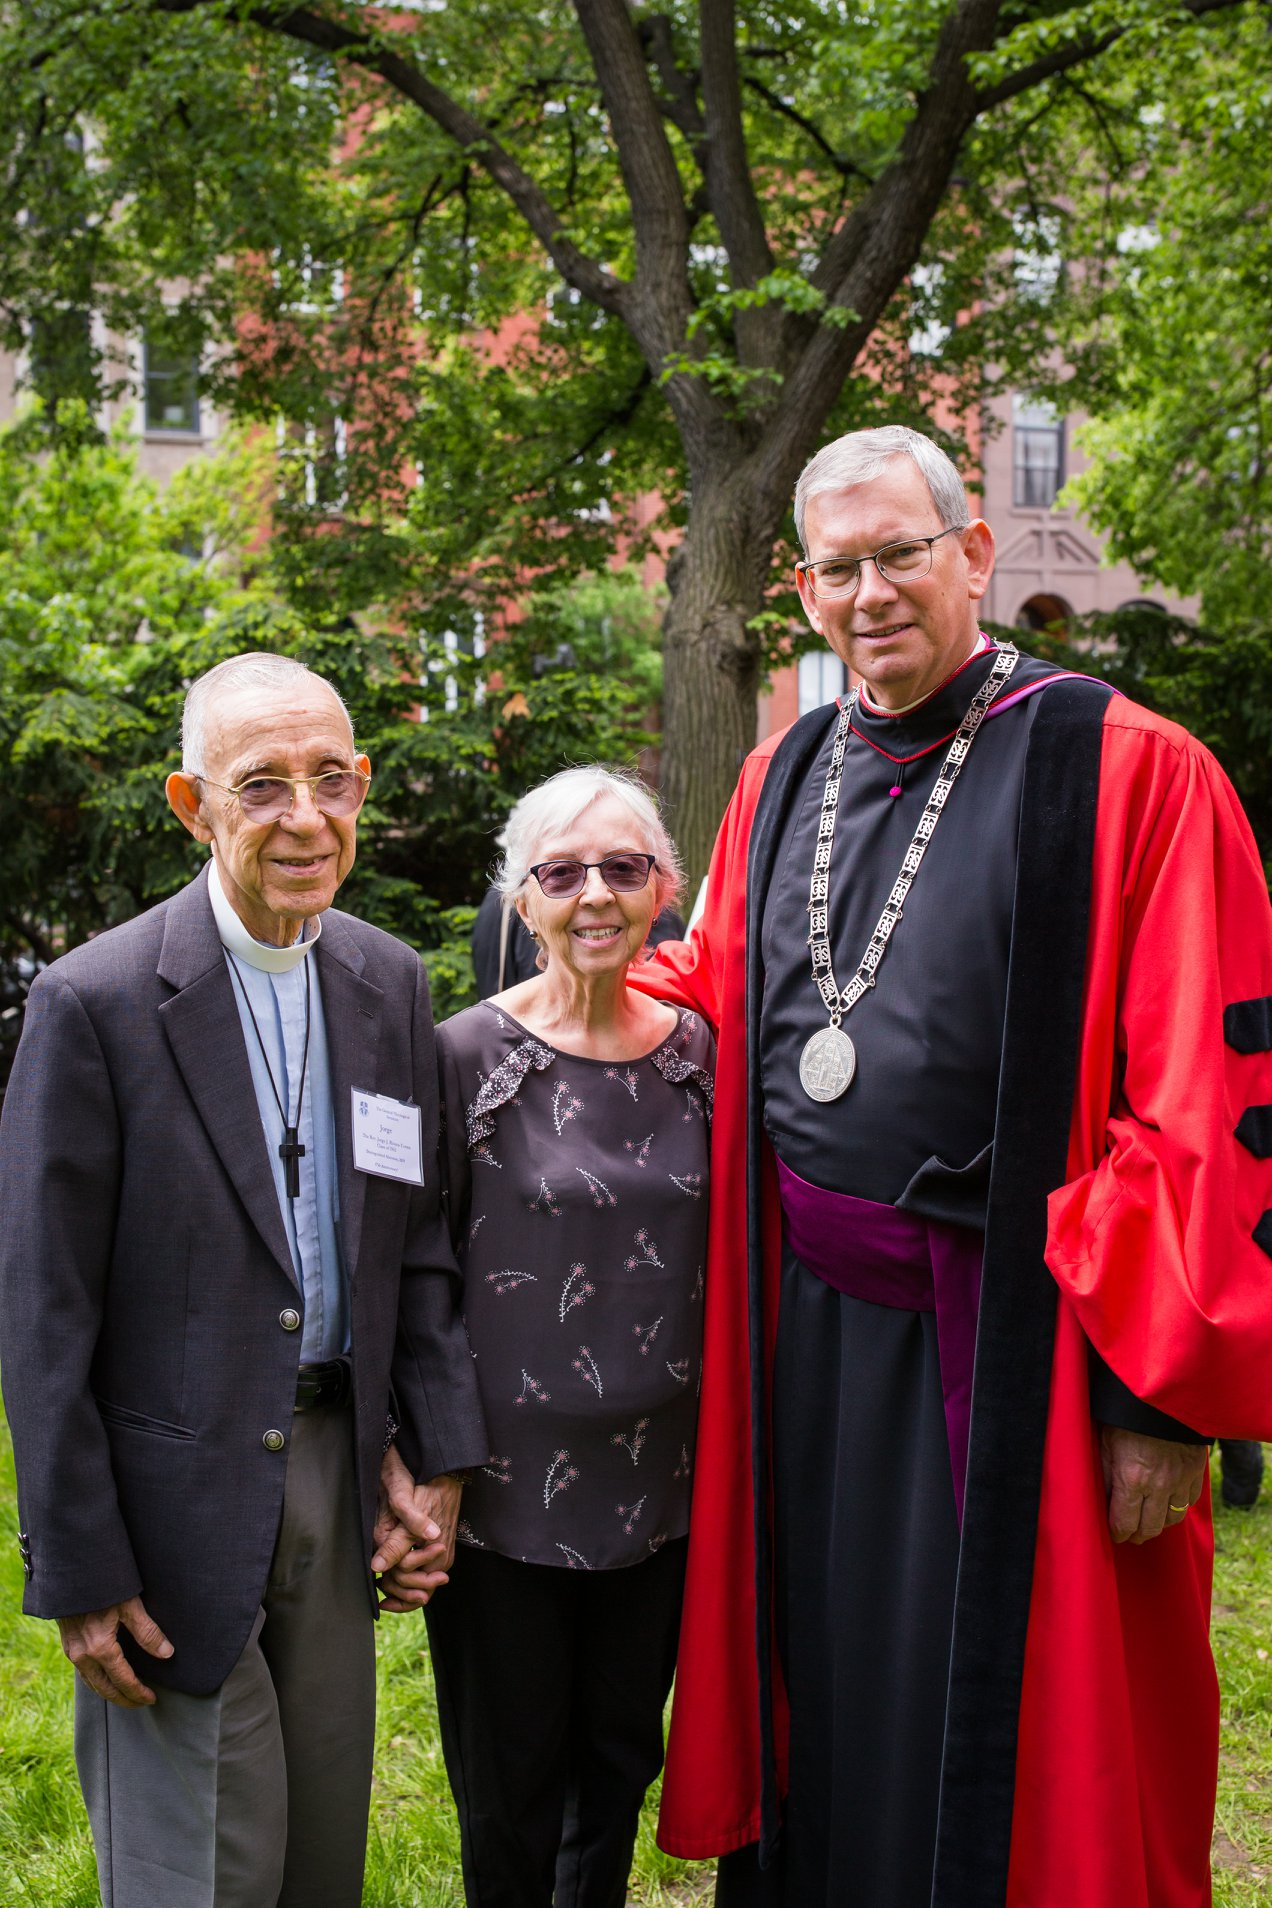 The Rev. Jorge Rivera-Torres, with his wife the Rev. Blanca Otaño and Dean Dunkle, after receiving the 2019 Distinguished Alumni Award for his service to Hispanic Episcopalian community.